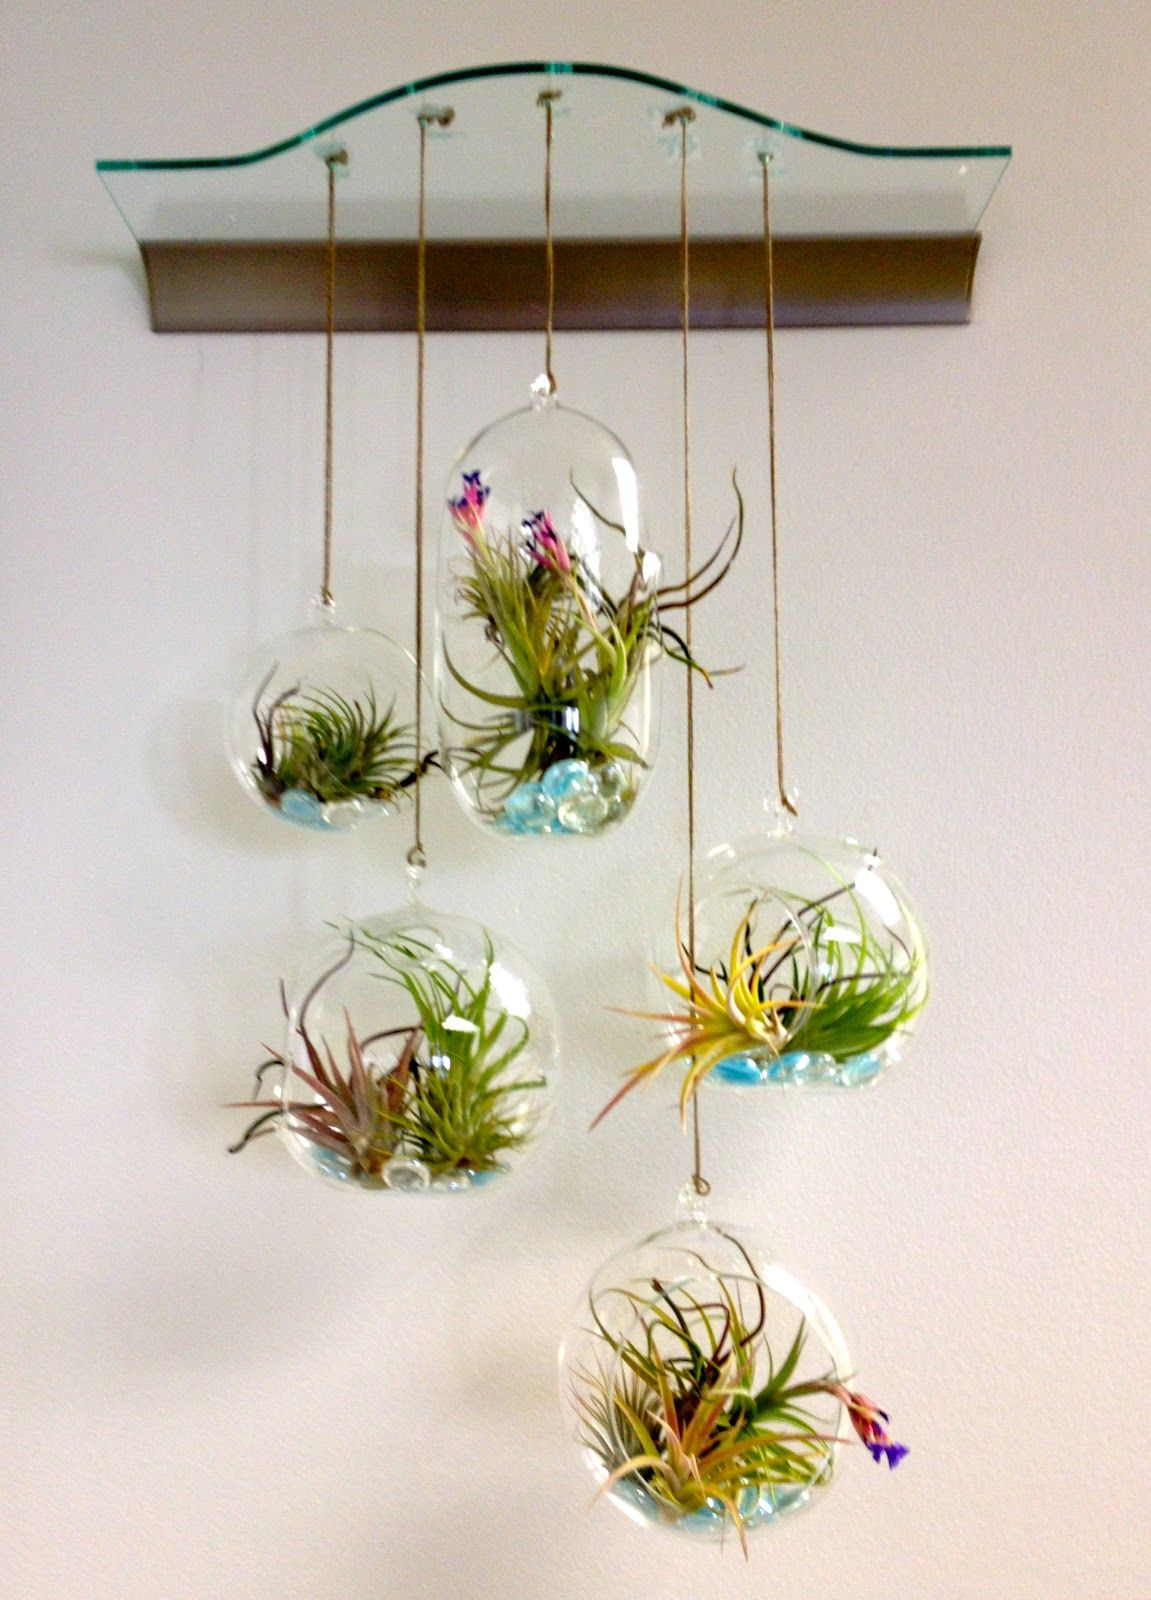 Adorable And Cute Hanging Decorations With Adorable And Cute Blown Glass Terrarium Containers Hanging Air Plants Air Plant Terrarium Glass Terrarium Containers